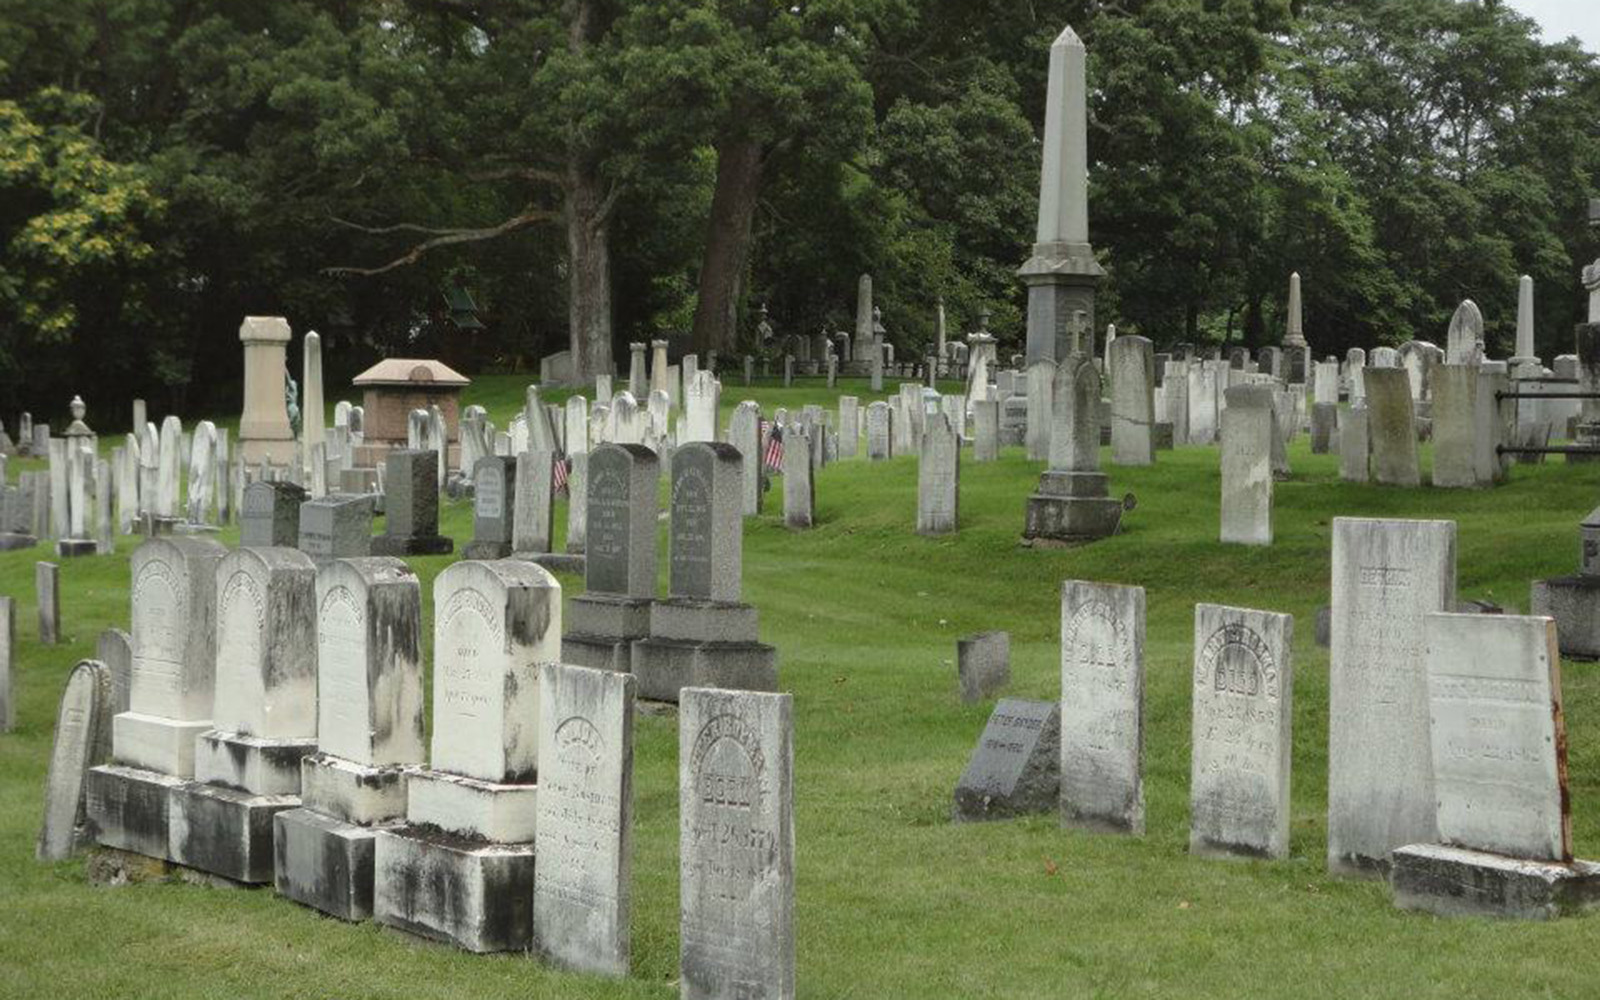 Reformed church of claverack cemetary